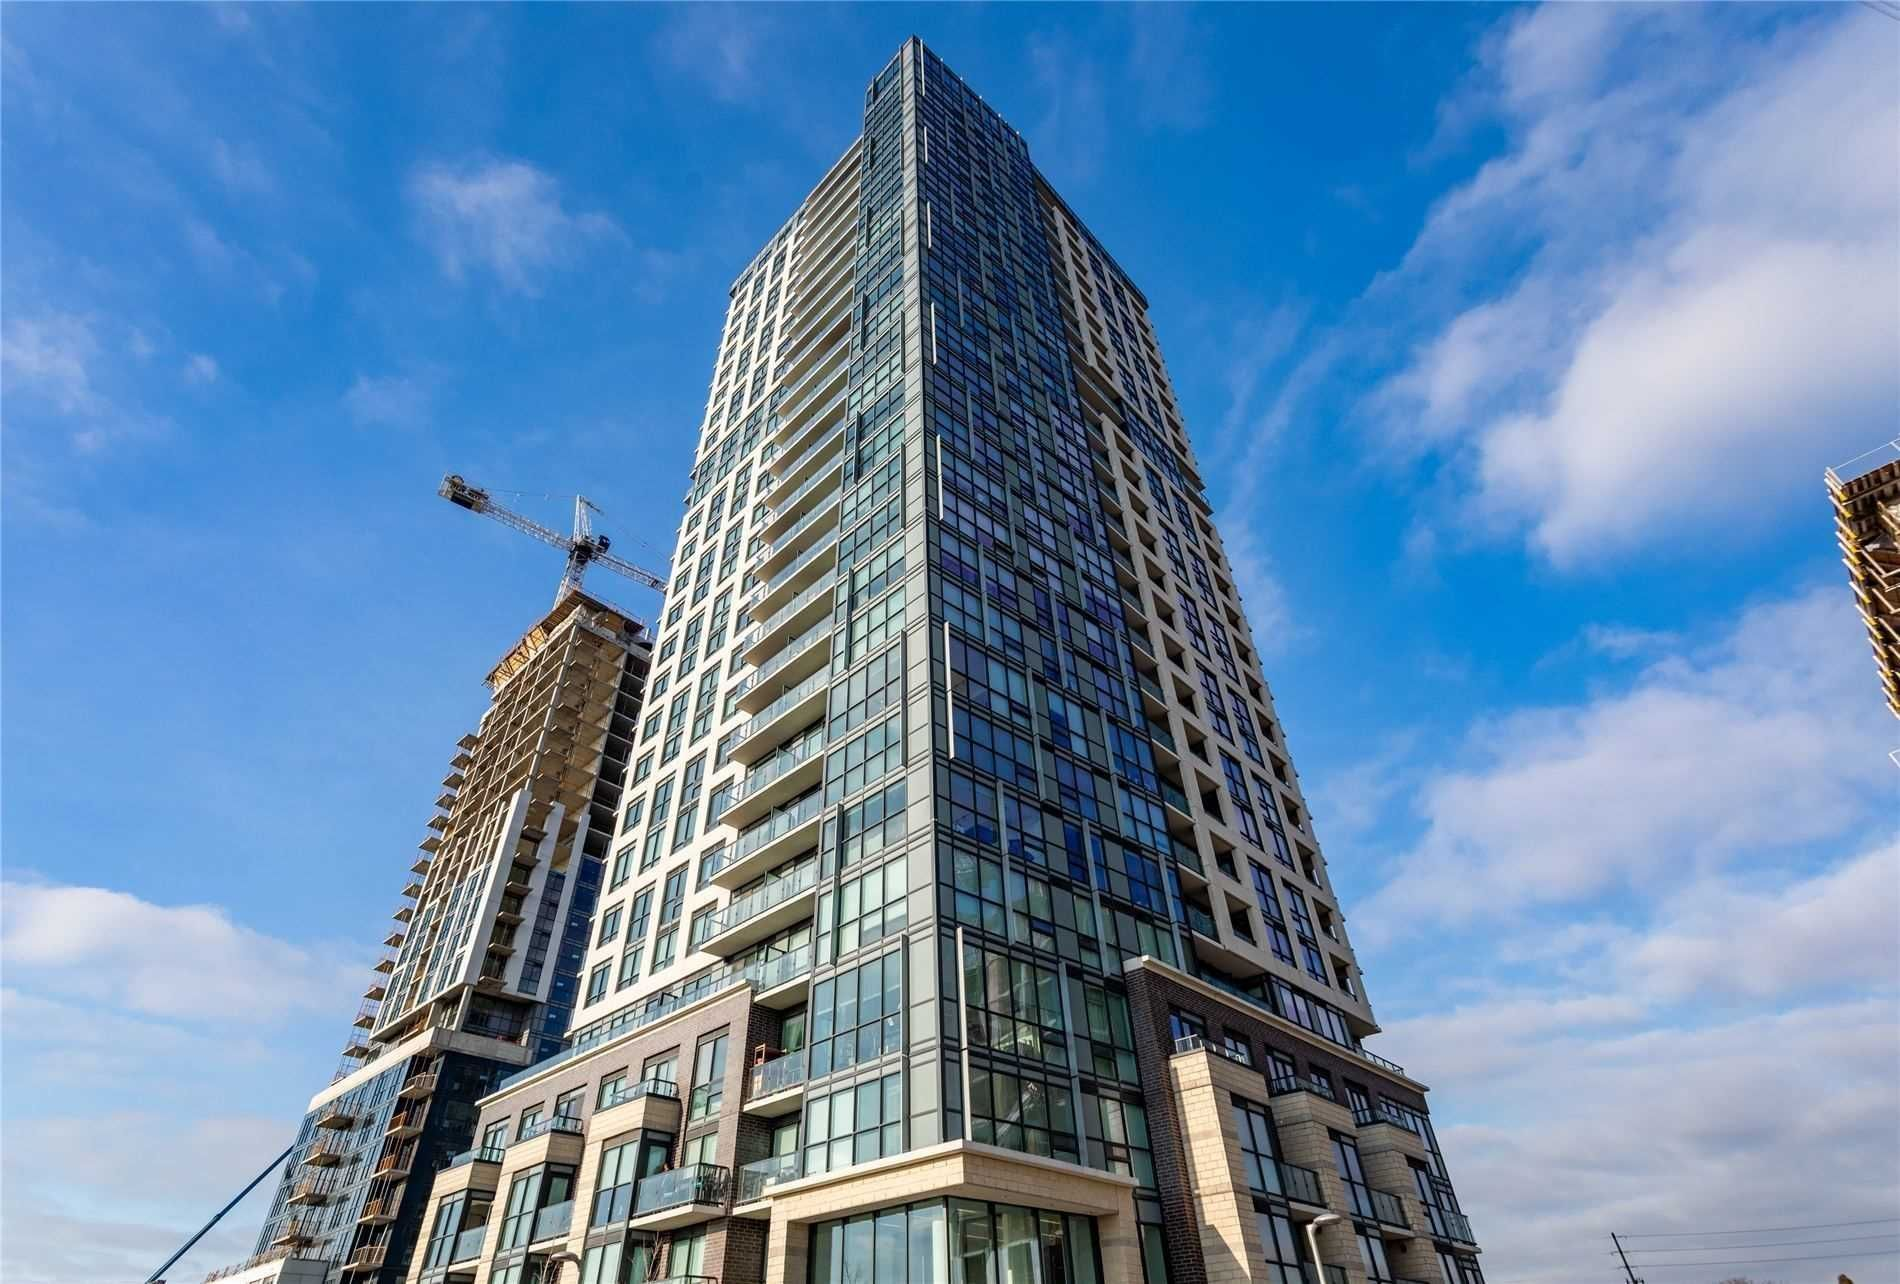 20 Thomas Riley Rd, unit 2610 for sale in Toronto - image #1